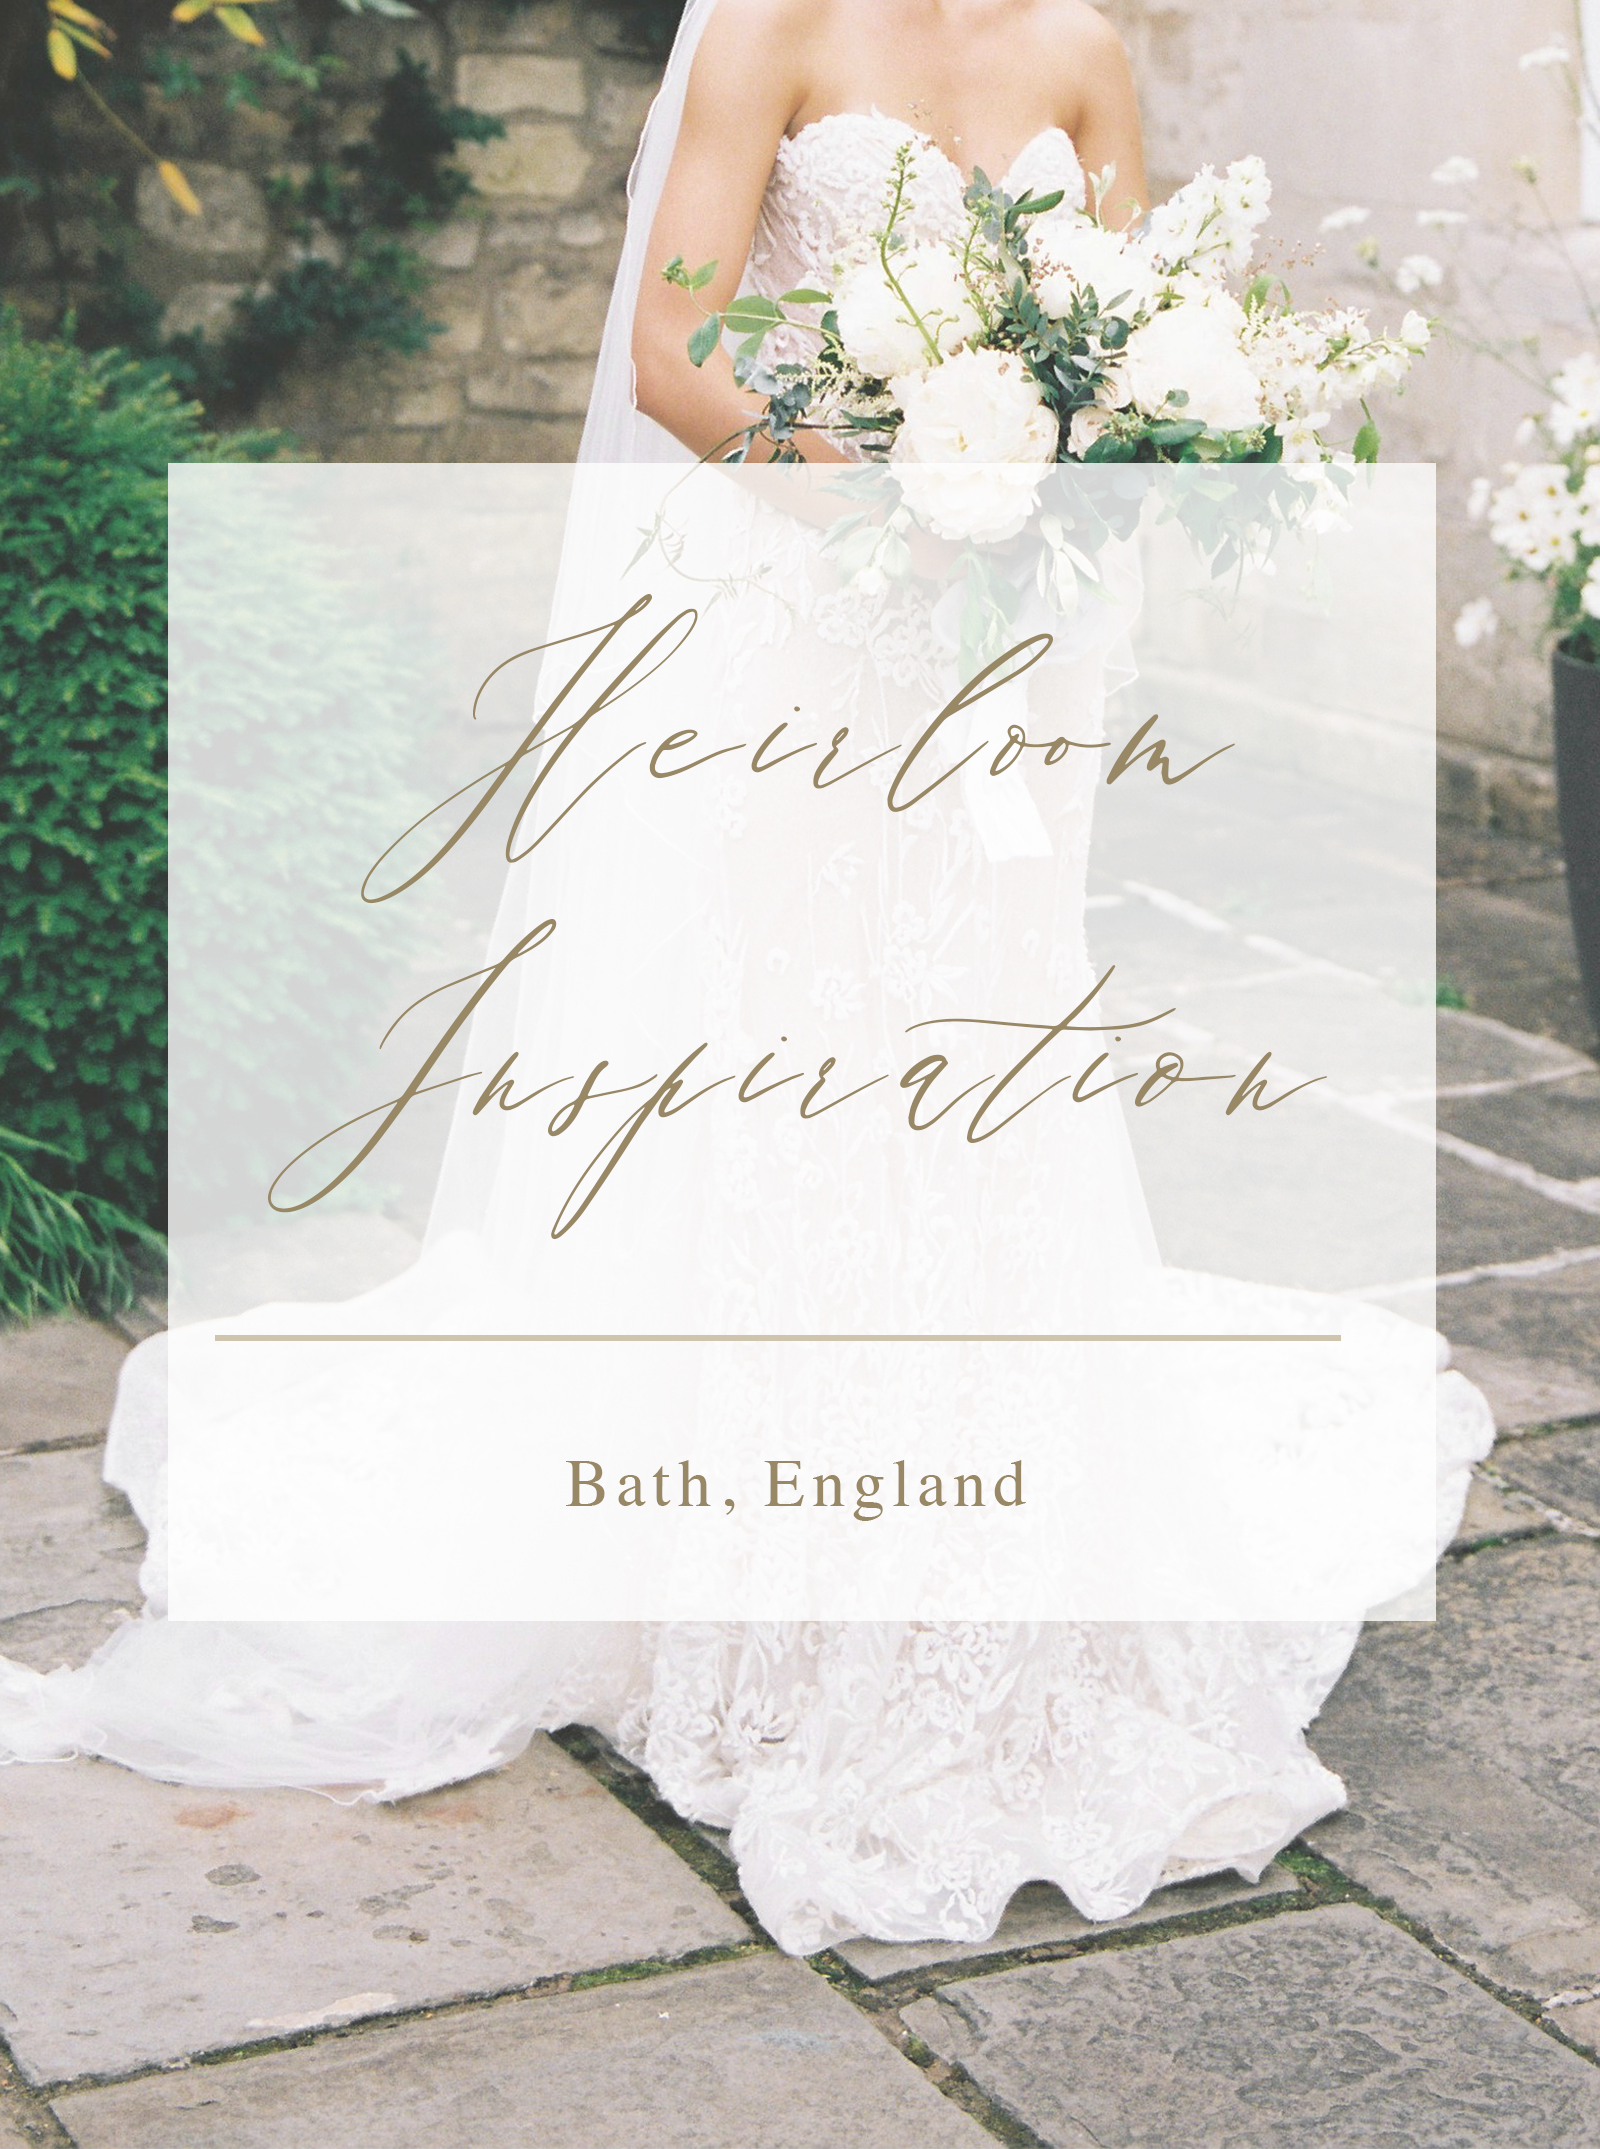 Luxury+Wedding+Planner+UK+_+A+Timeless+English+Inspired+Editorial+with+Georgian+Blue+_+Cotswolds+Wedding+White+and+Silver+Toned+Green+Neutral+Tones+_+The+Royal+Crescent+Hotel+Bath+_+Alexander+J+Collins+Photography+3+.png